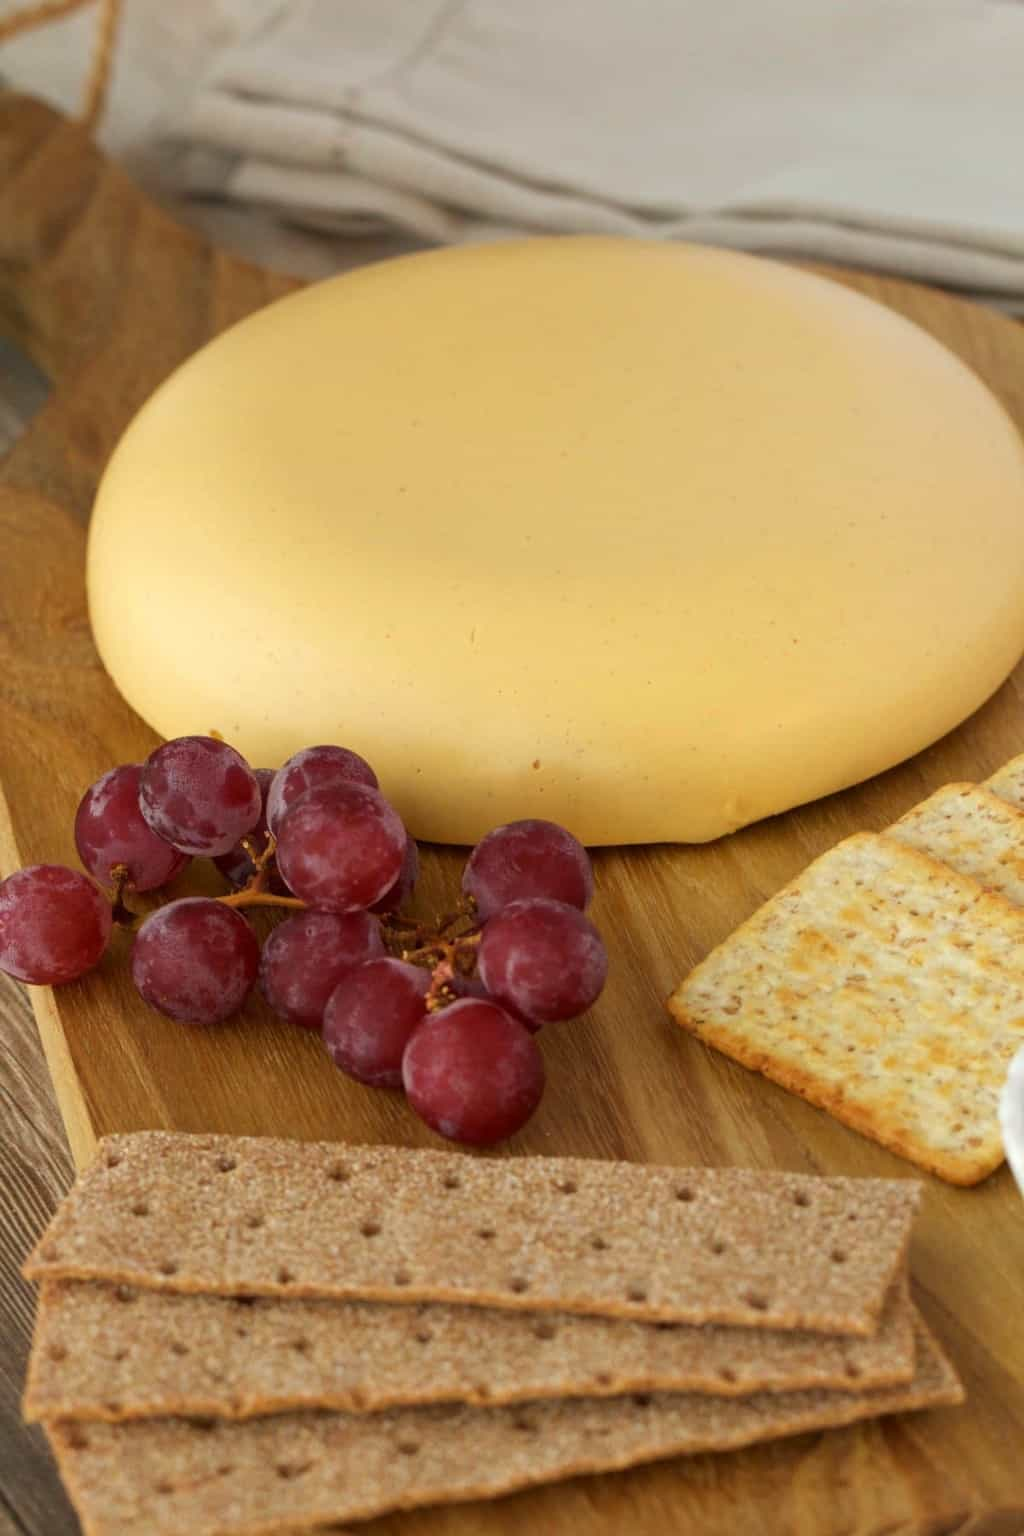 Wheel of vegan cashew cheese on a cheese board with red grapes and crackers.